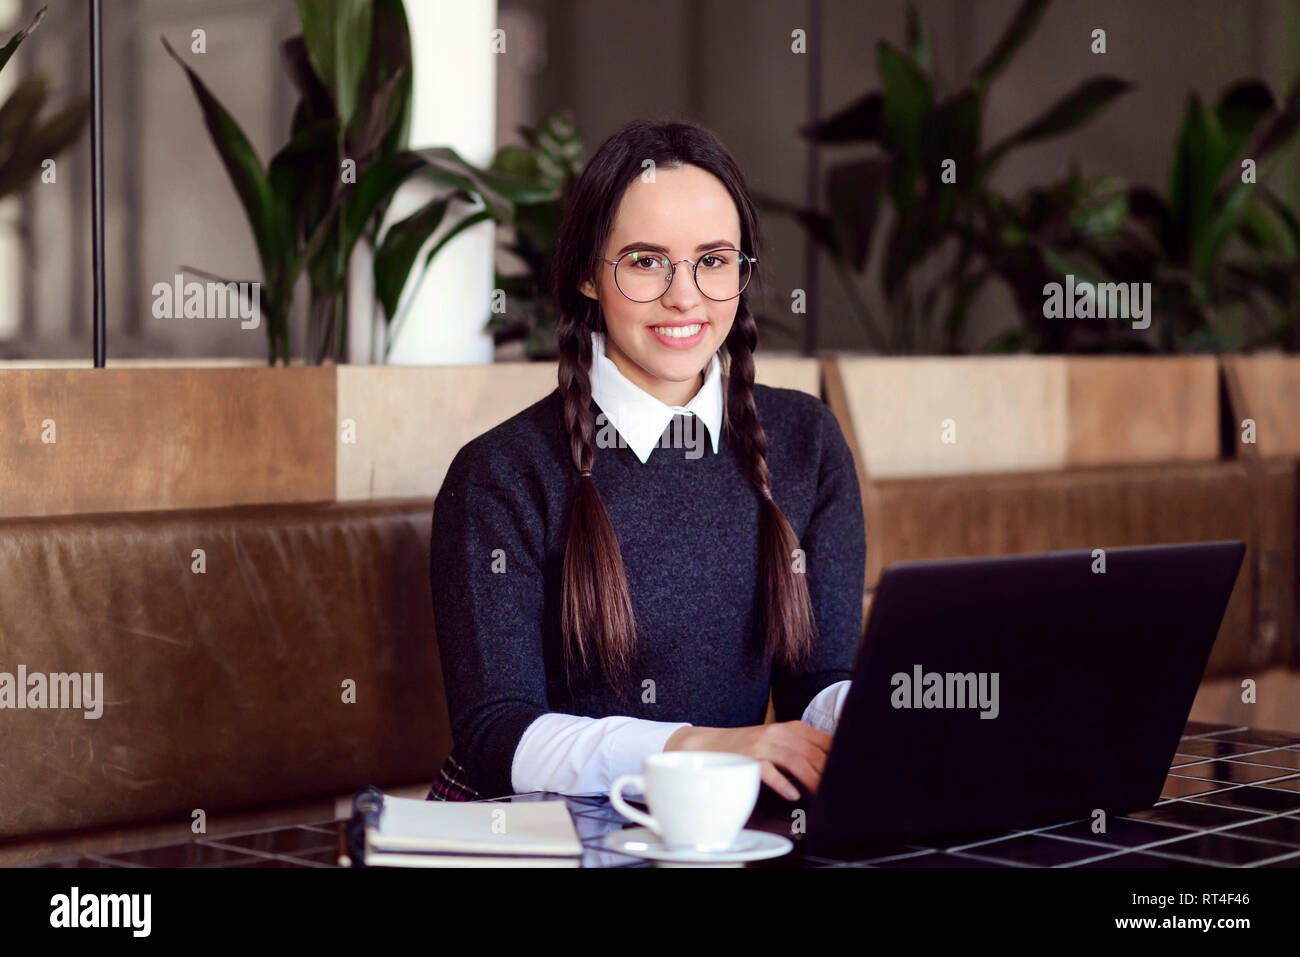 Schoolgirl with braids typing something and researching on the laptop at the cafeteria Stock Photo